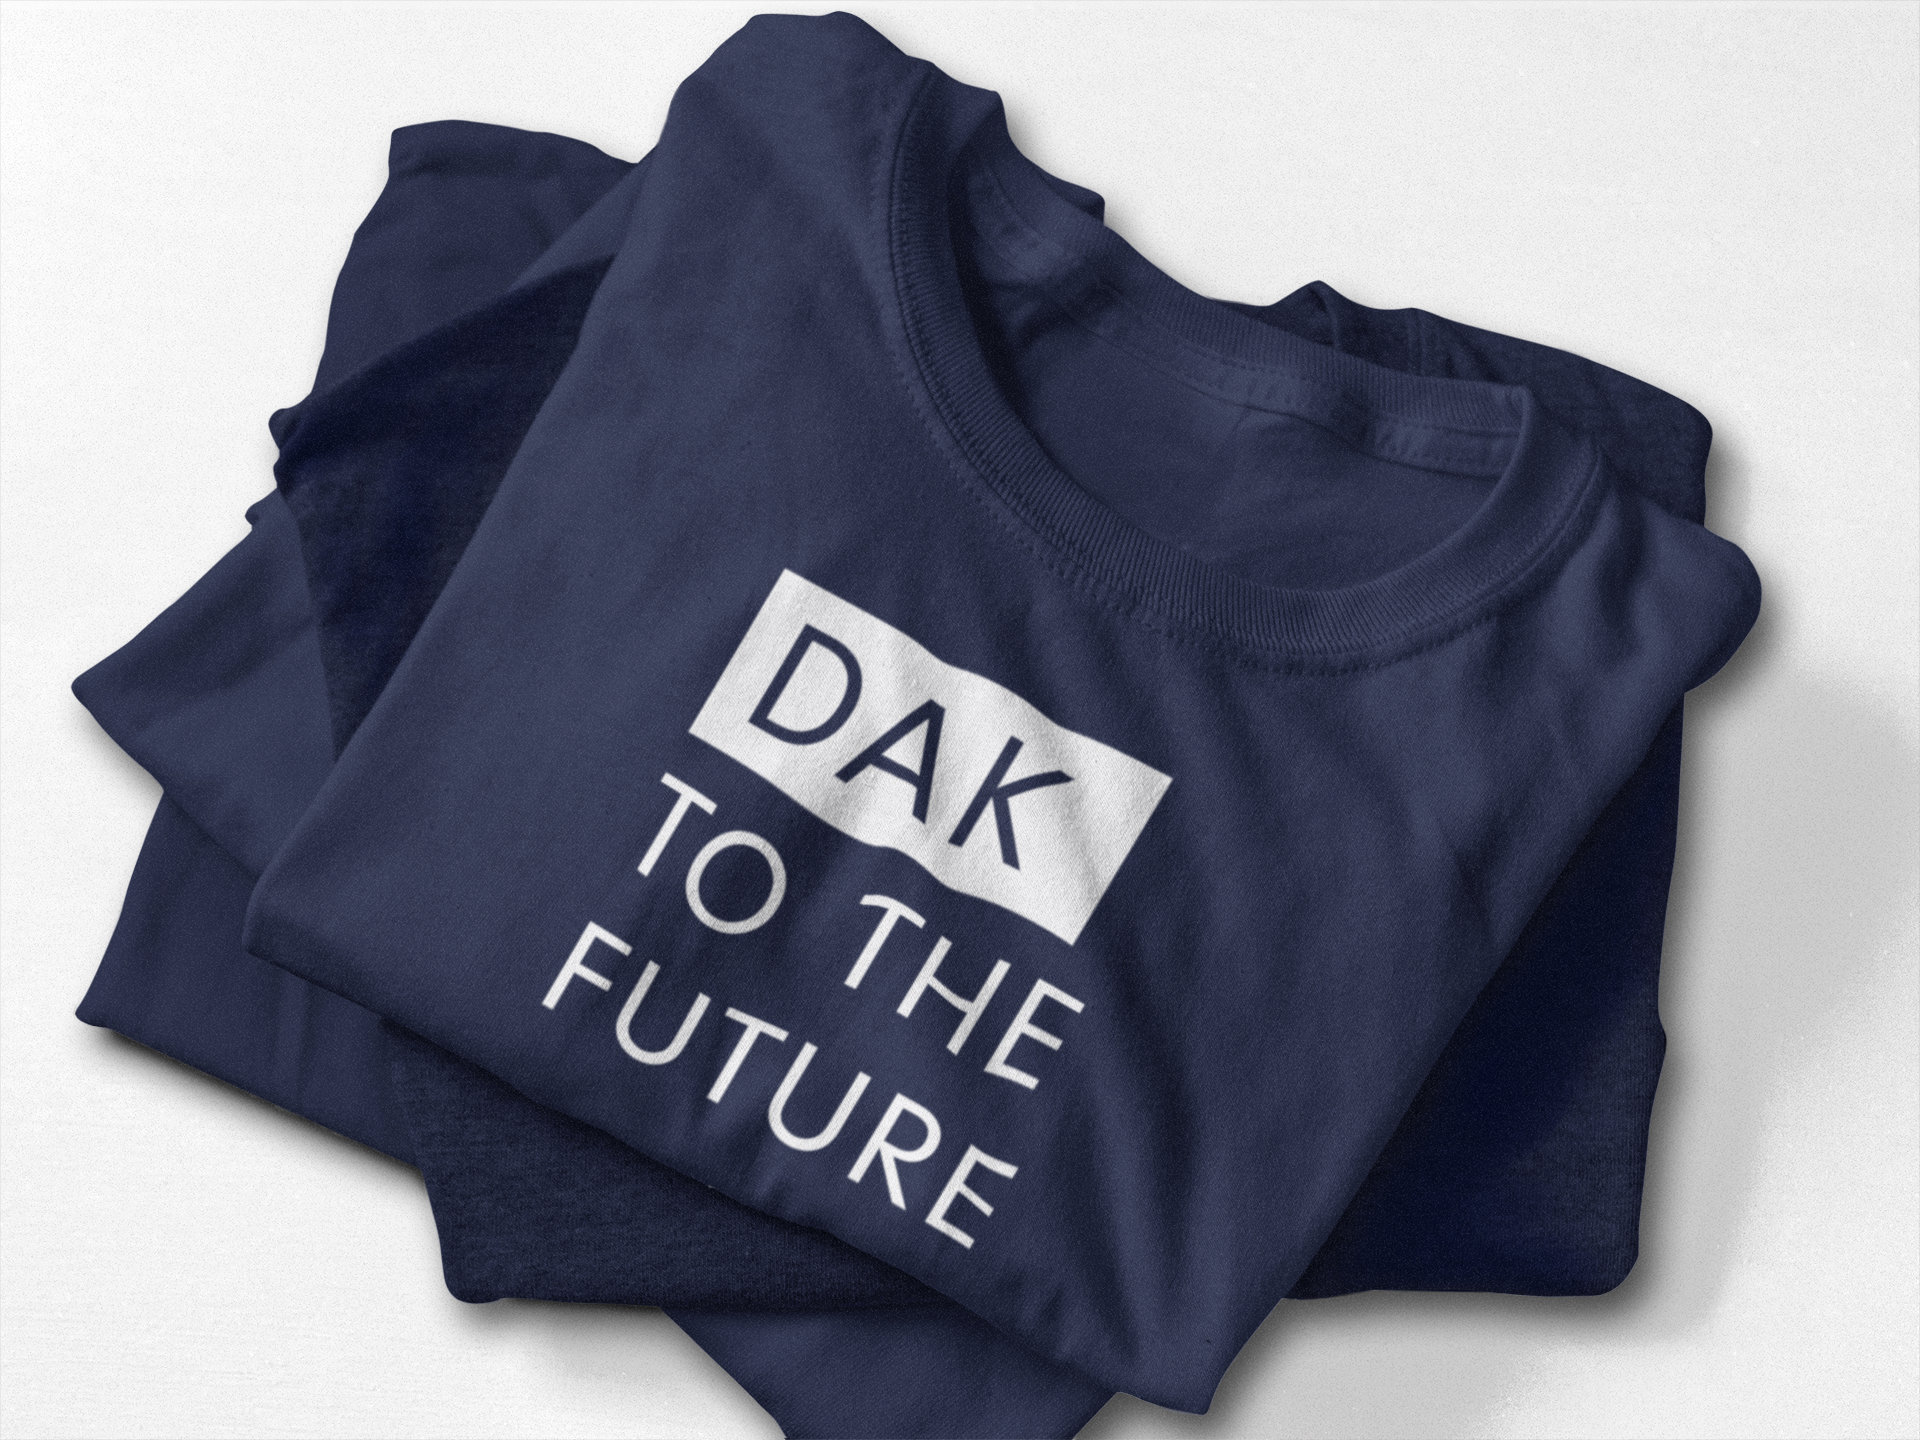 2d0bd27b320 Dak To The Future Funny Dallas Cowboys   Dak Prescott Shirt  Navy